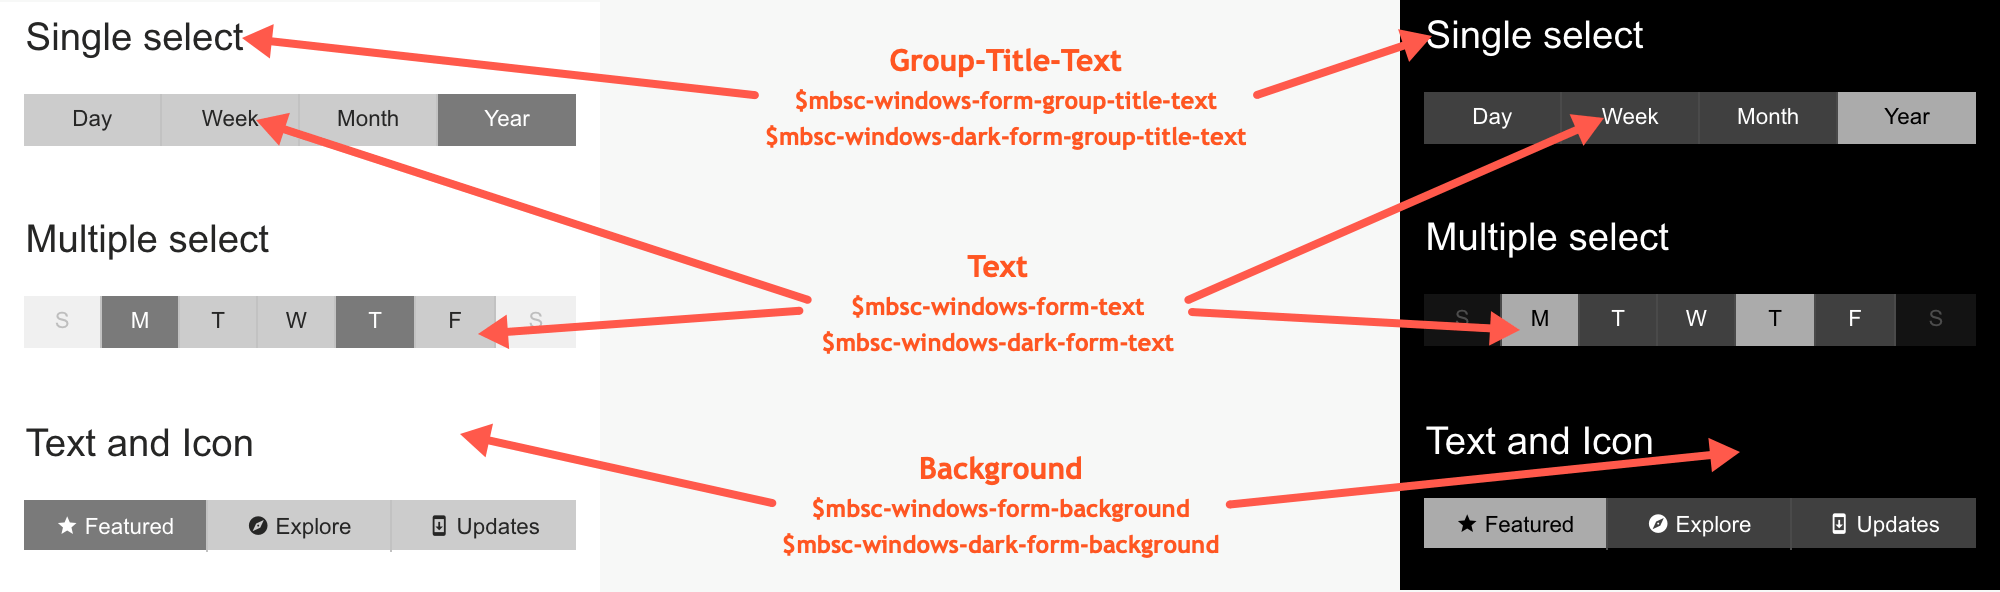 Windows theme variables for the Segmented component